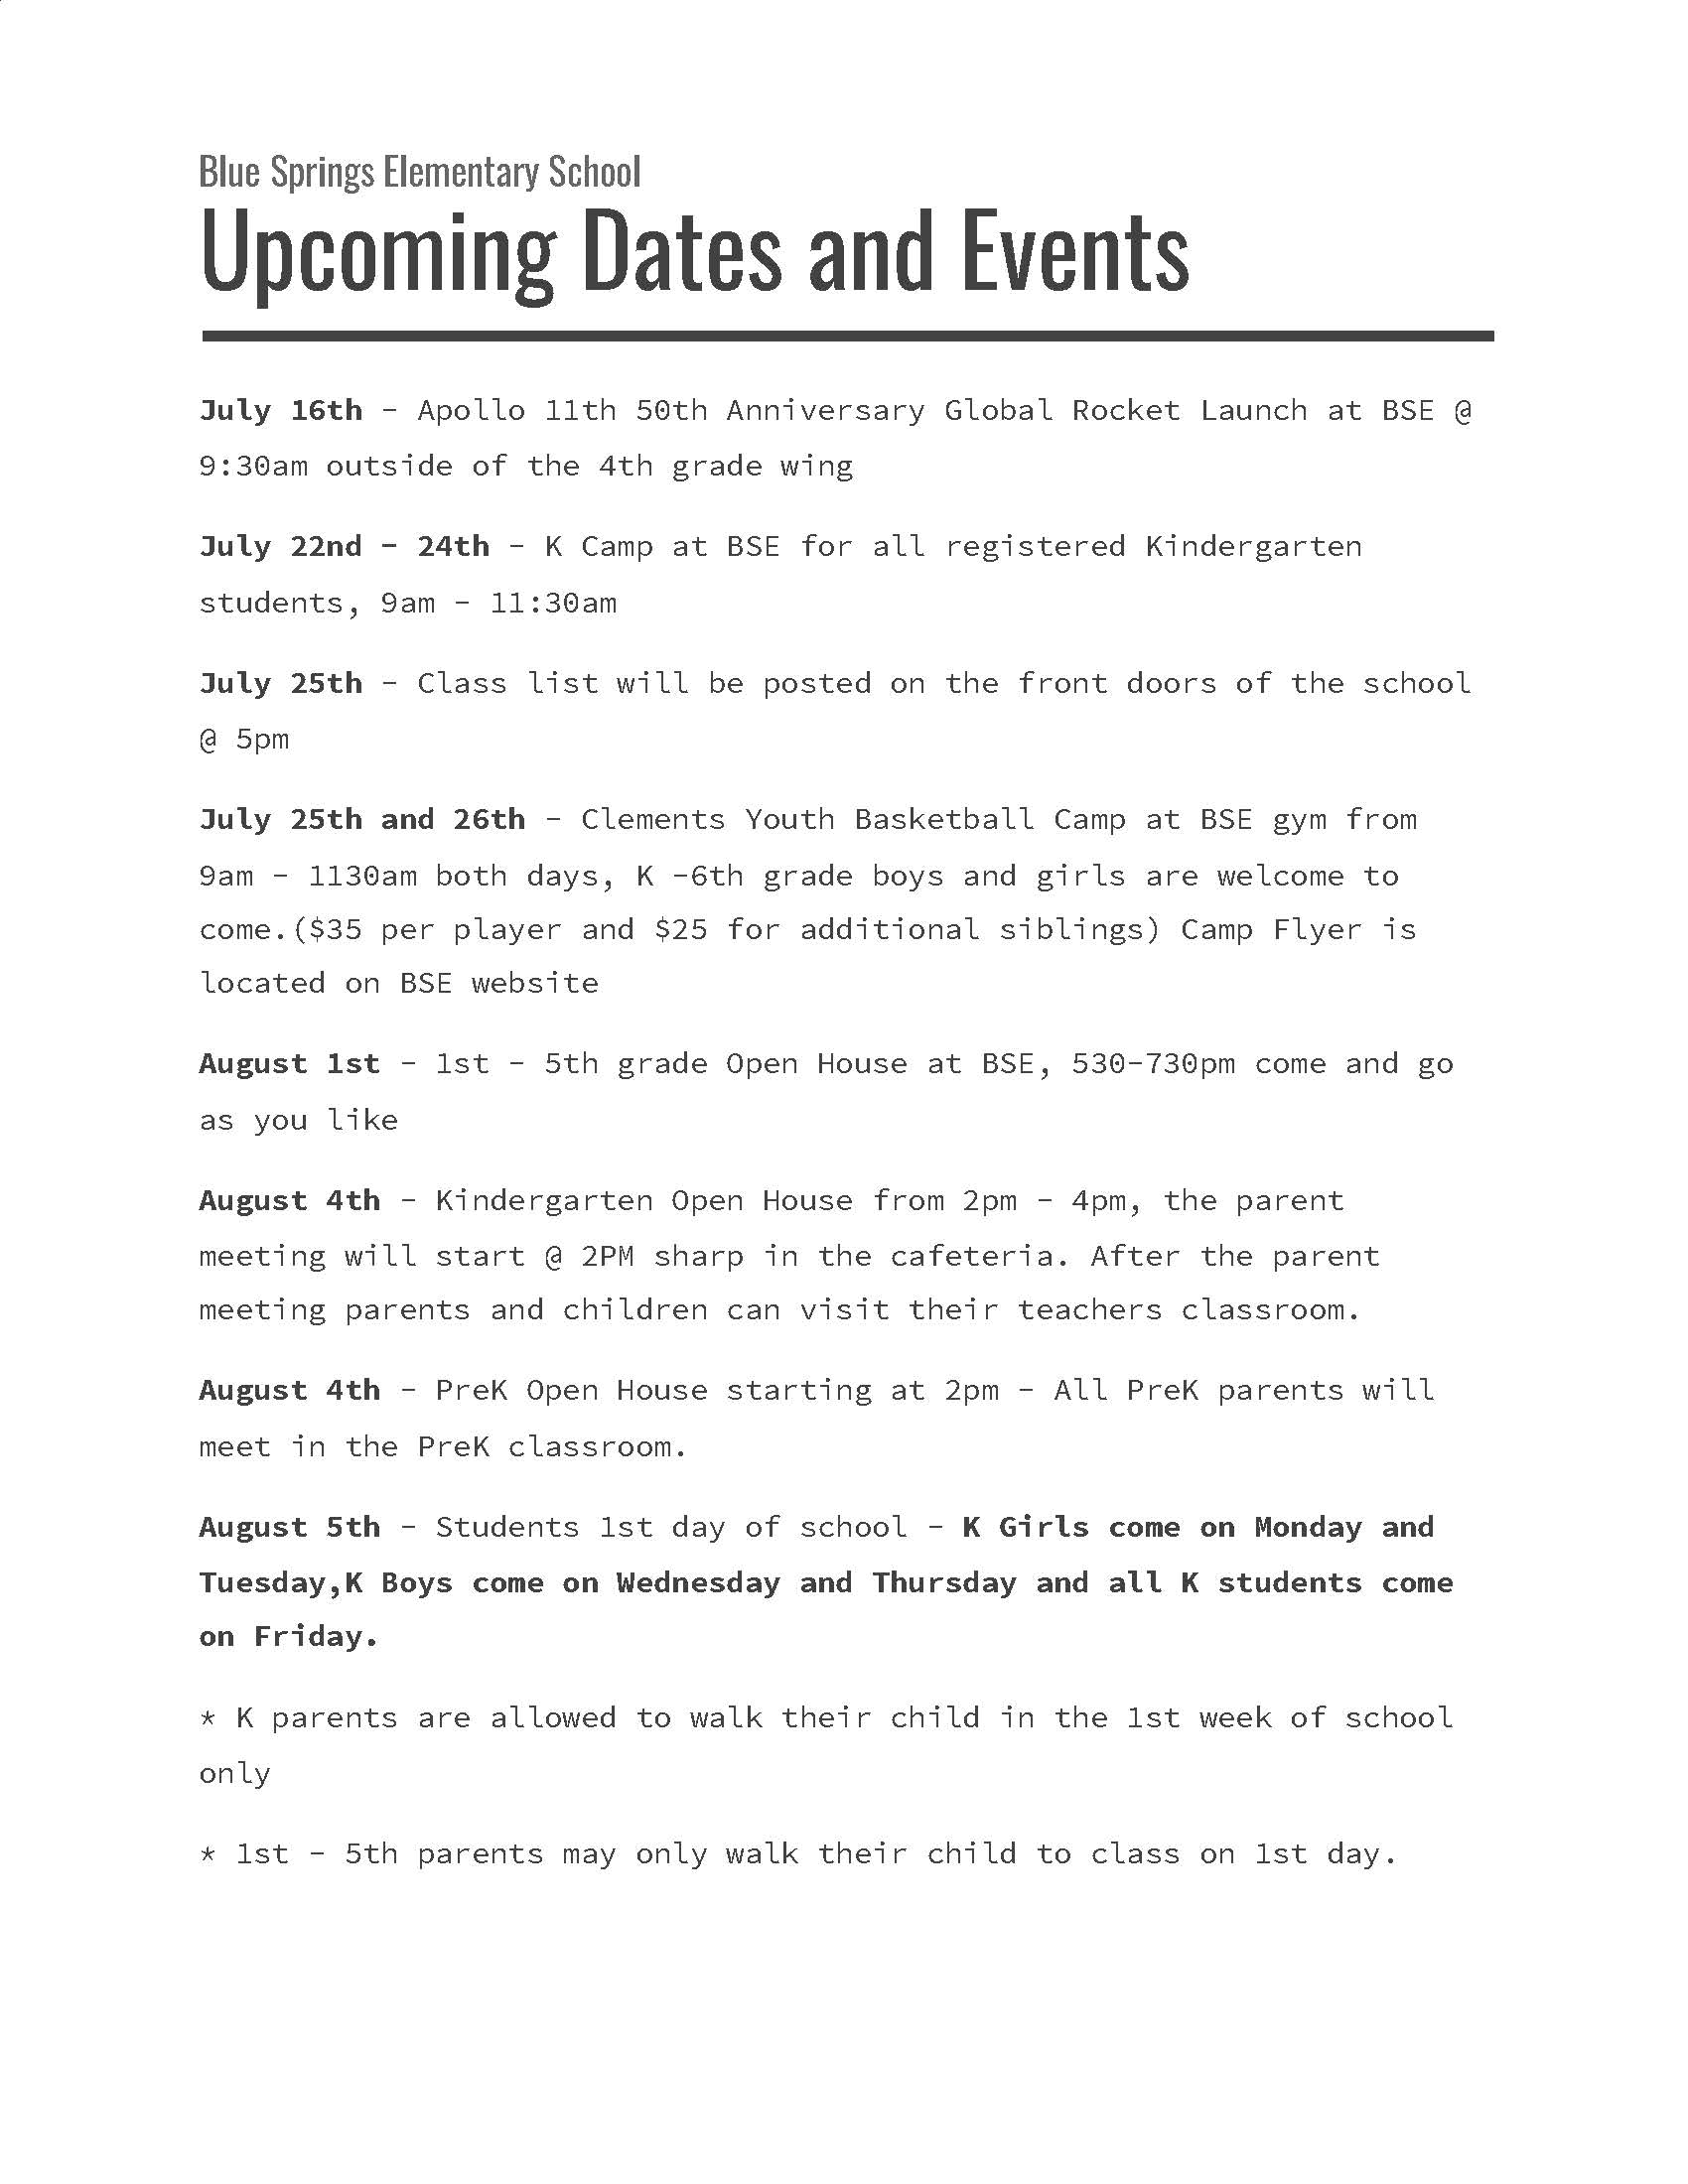 bse events